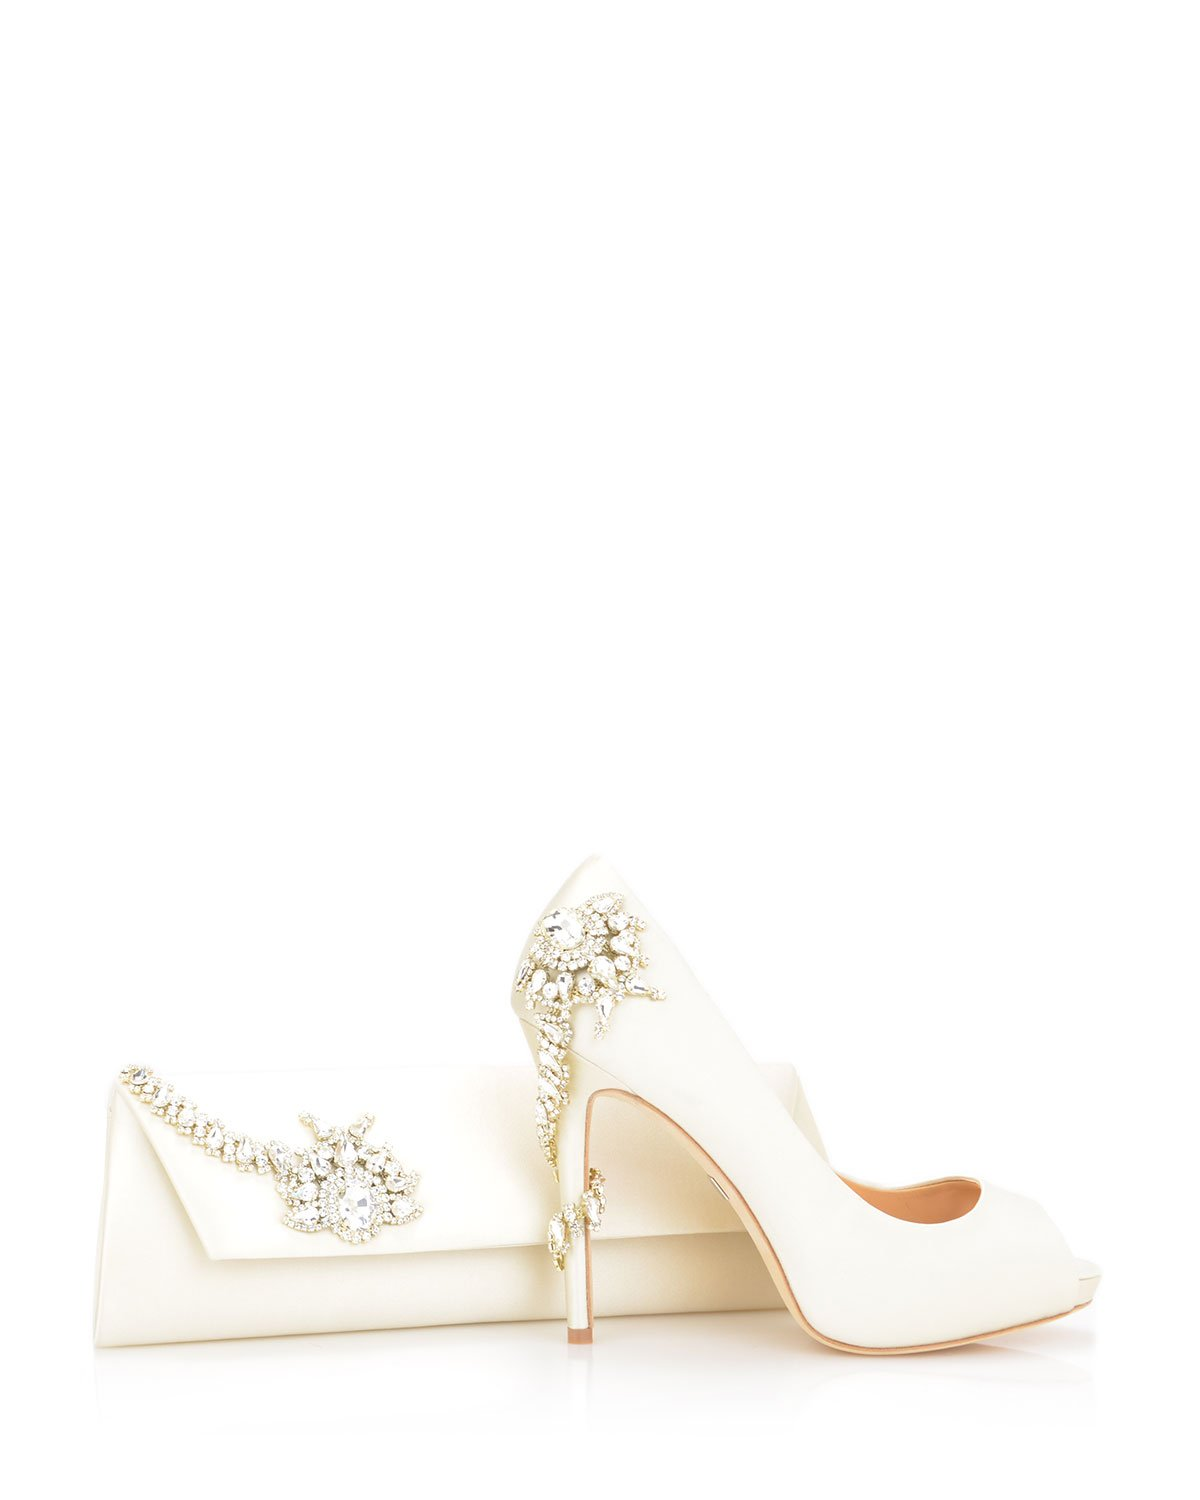 Badgley Mischka - Royal - Ivory - Wedding Shoes Melbourne